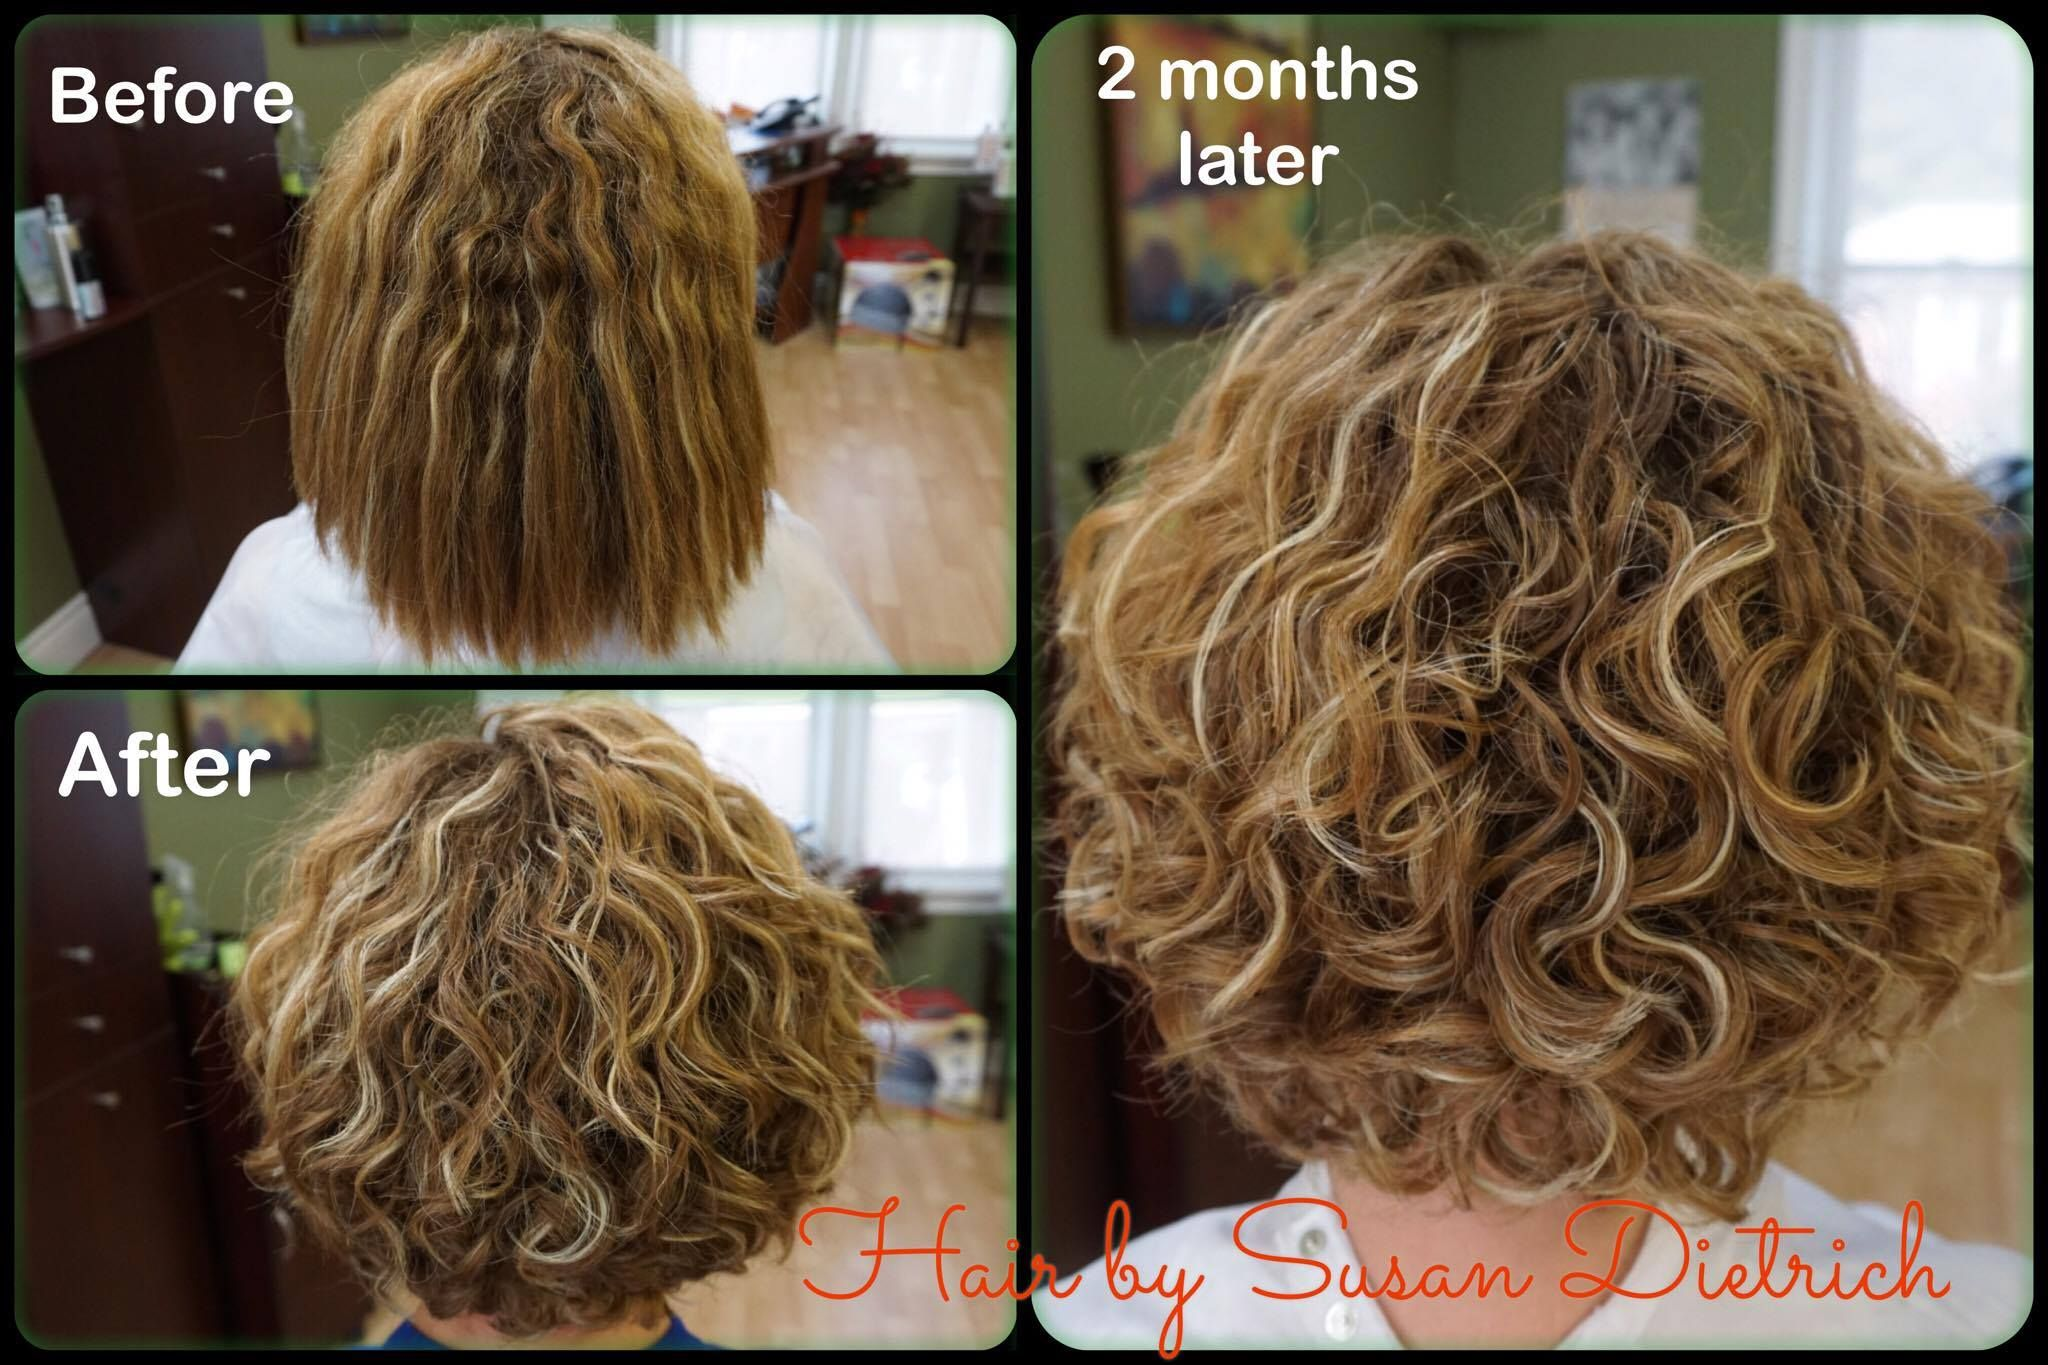 Class Act Hair Design In Waterloo Shows How Taniajane Naturally Curly Helps Heal Those Curls Curly Hair Styles Permed Hairstyles Short Permed Hair